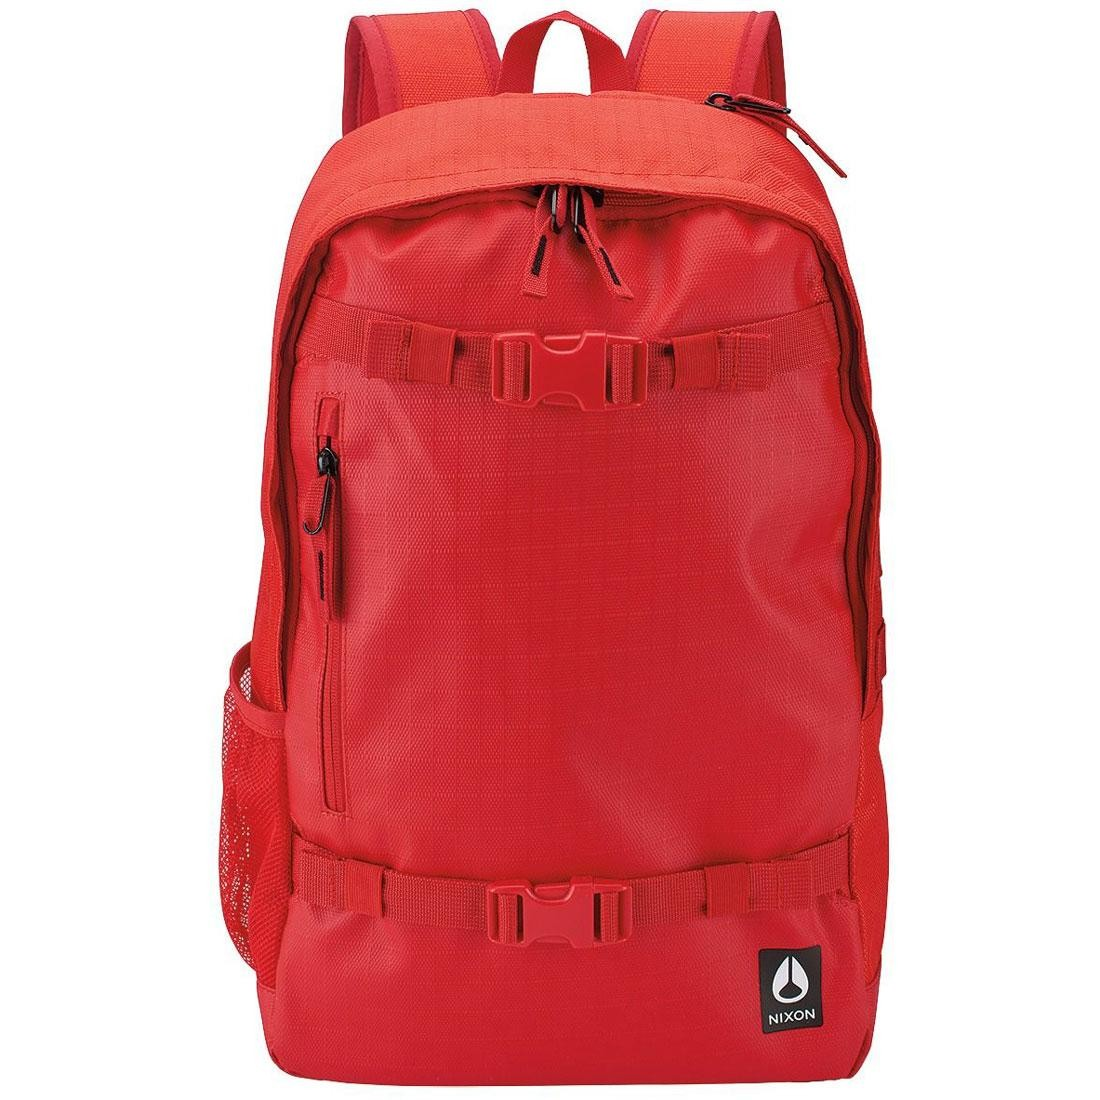 Nixon Smith Backpack - RED (red / all red)